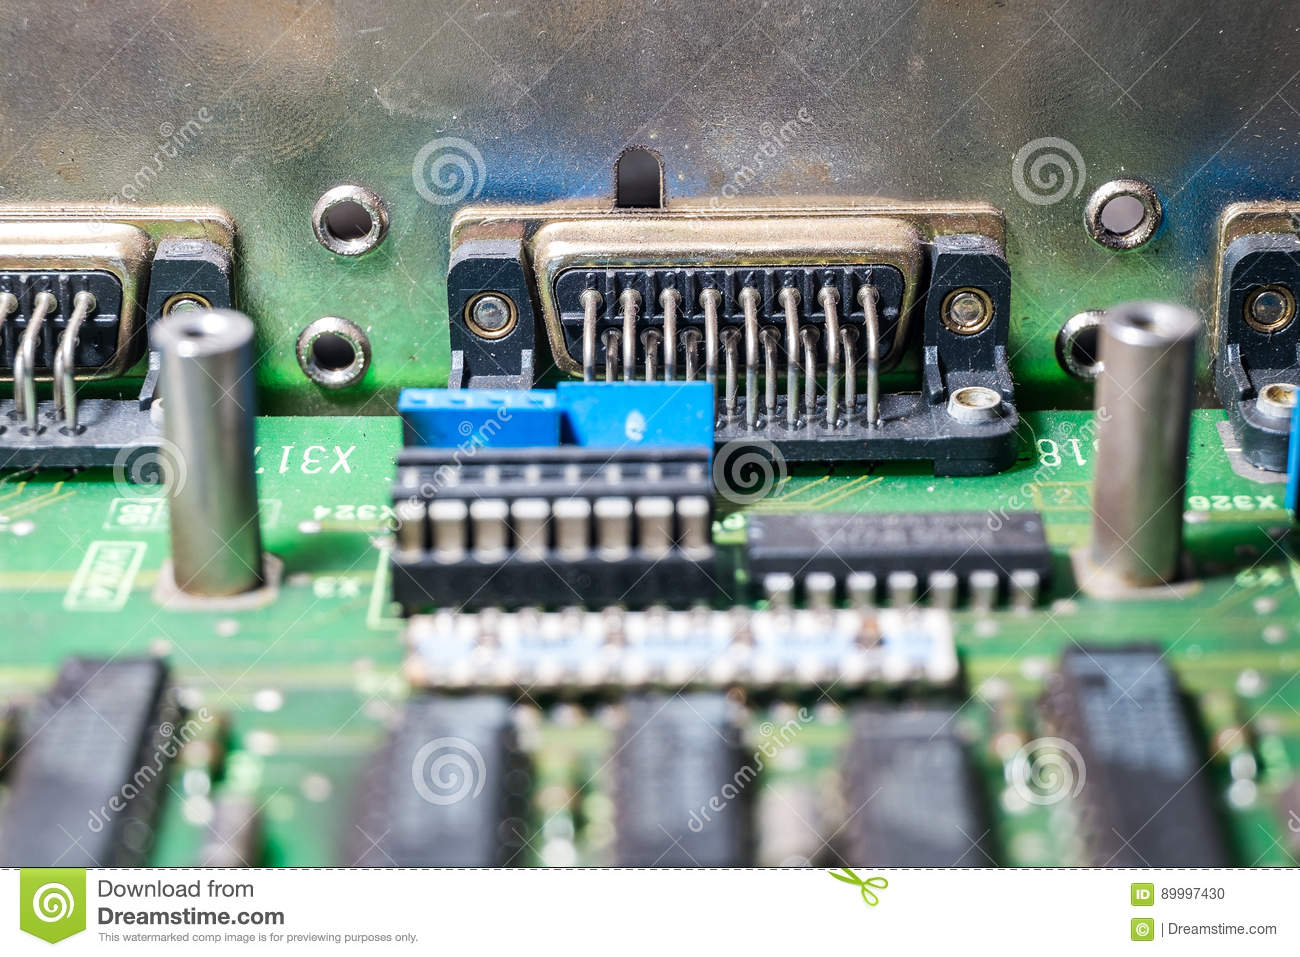 Microchips And Transistors On A Circuit Board Stock Photo Image Of Green Electrical With Royalty